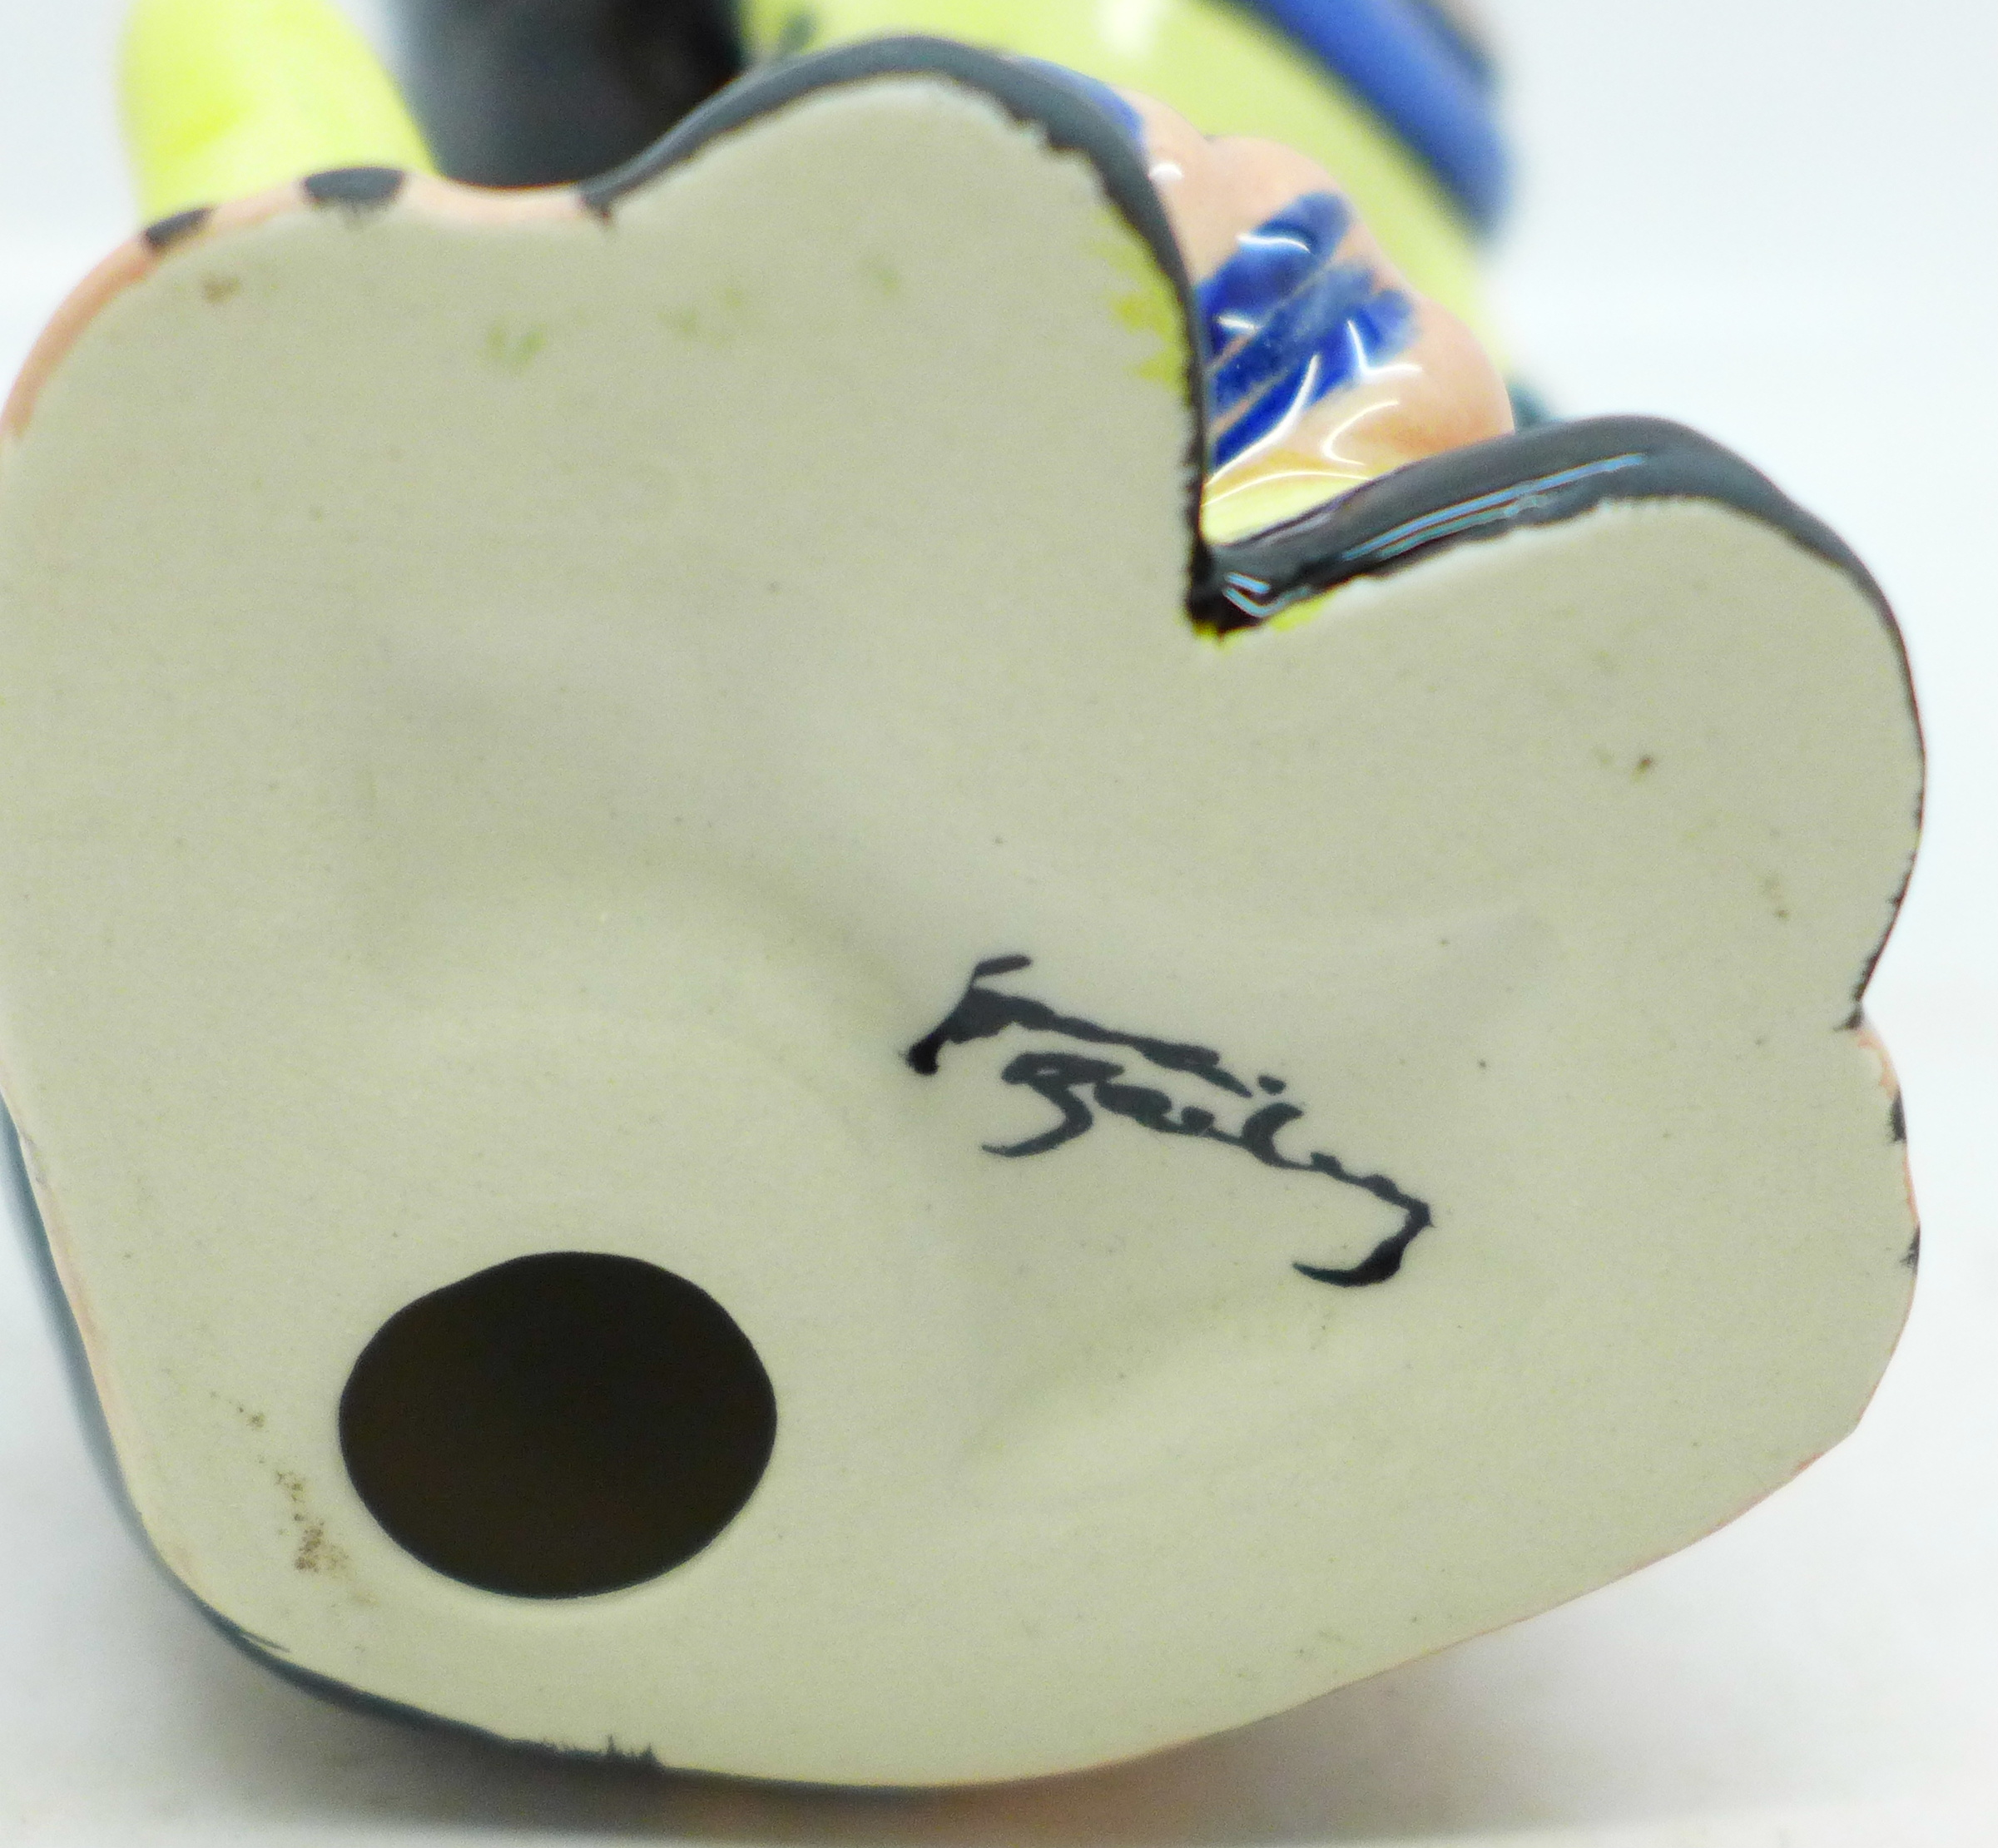 Lorna Bailey Pottery, 'Muppet the Cat', signed on base, 14cm - Image 3 of 3